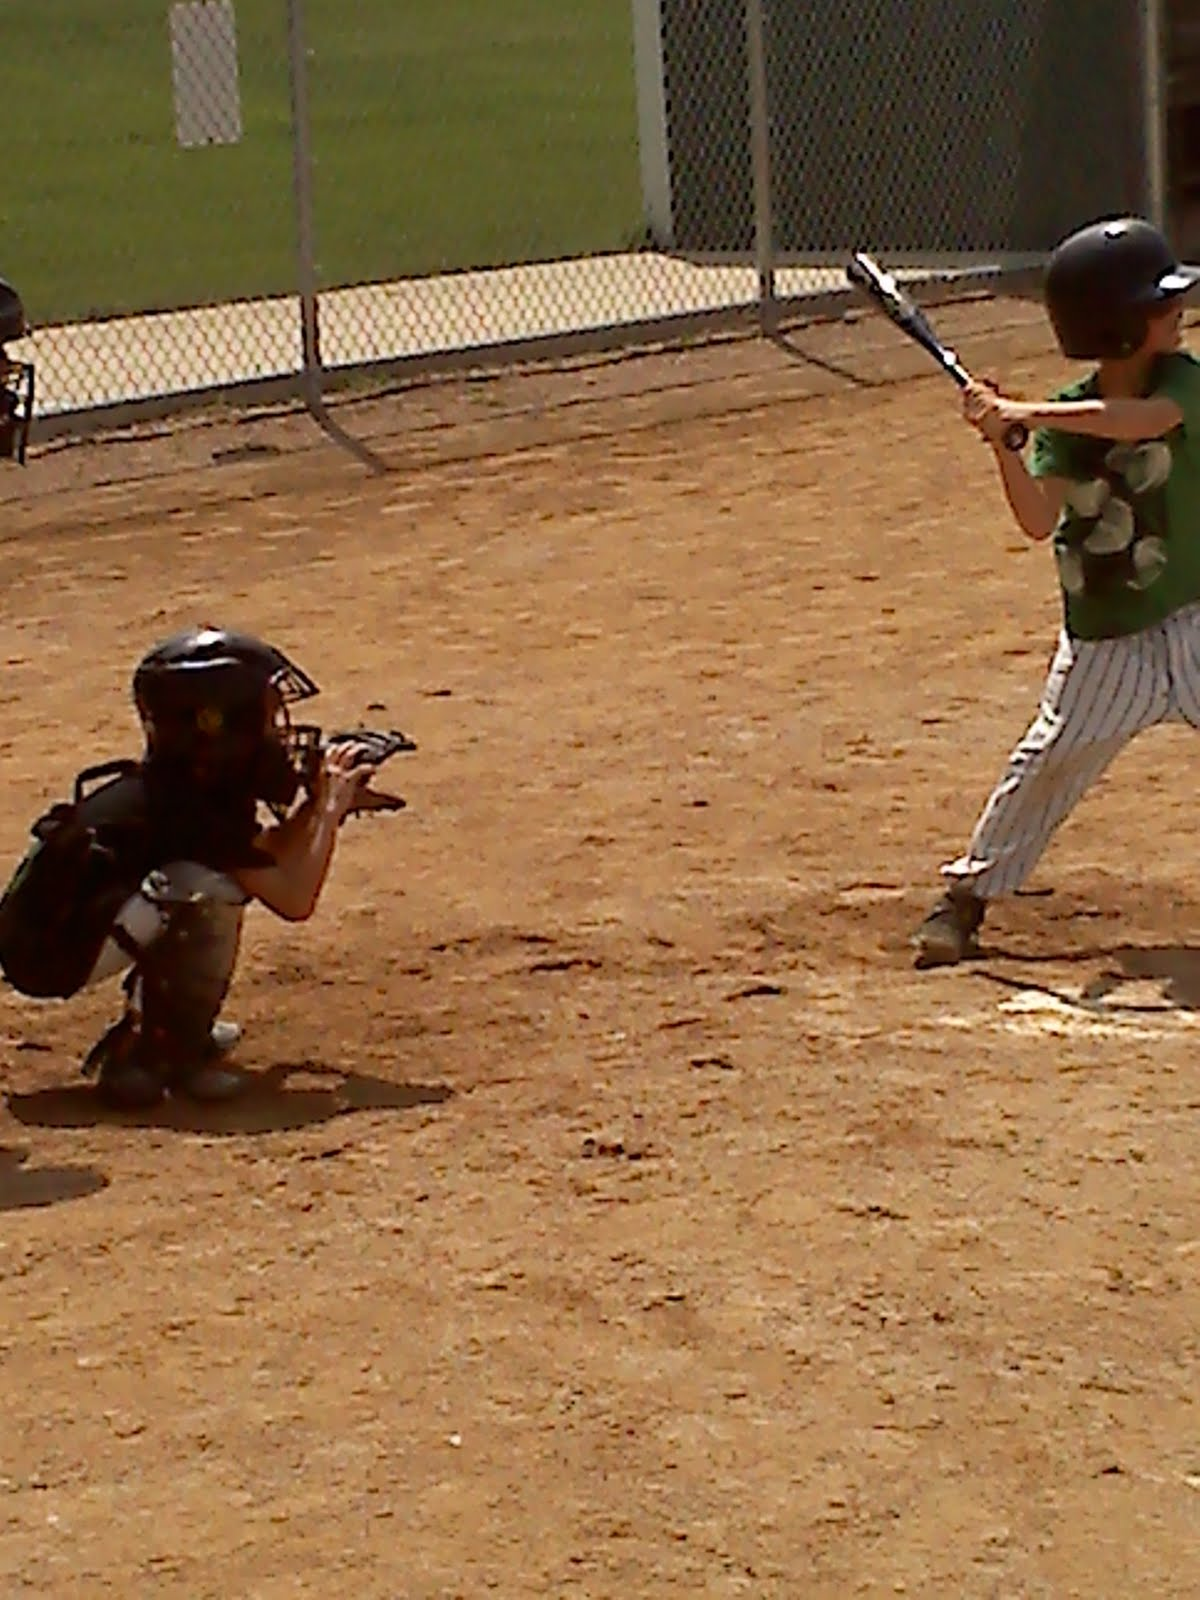 descriptive essay about a baseball game My mom essay success and failures of reconstruction essays (my life in uk essay) descriptive essay on a baseball game changing attitudes towards marriage and cohabitation essays, pierre saly dissertation histoire de la.